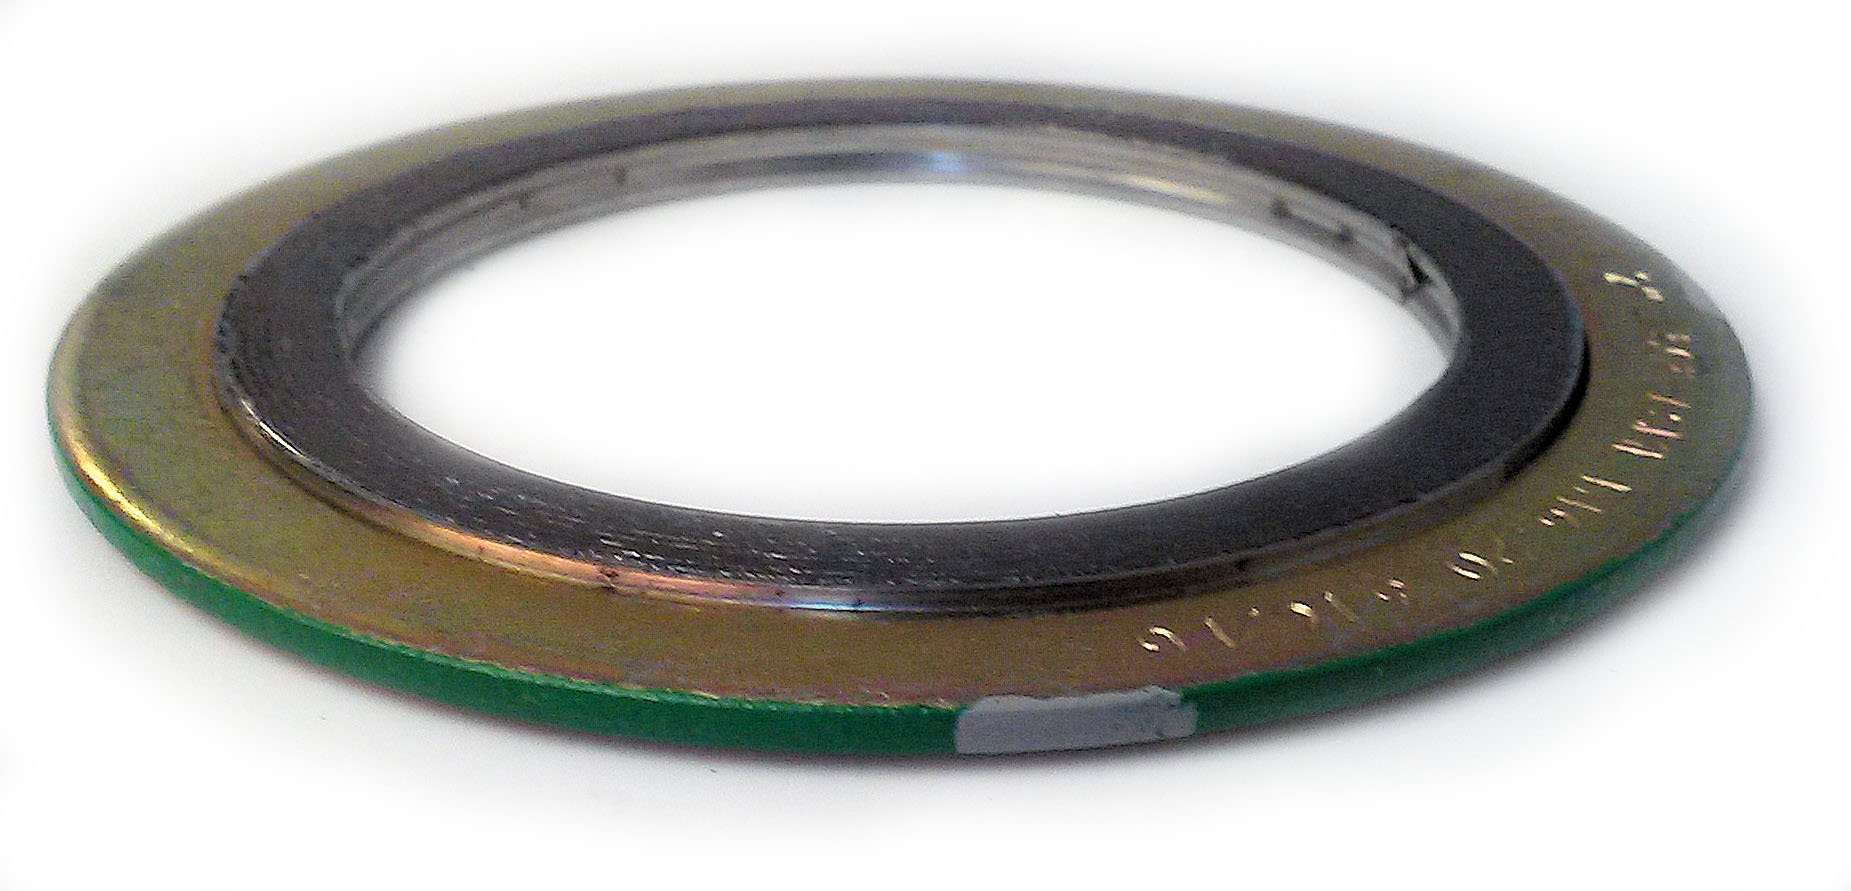 Sur-Seal, Inc. Teadit 900010316GR150  Spiral Wound Gasket 10'' Pipe, Class 150 Flanges, 316SS Windings, Flexible Graphite Filler for Applications with Thermal Cycling and Pressure Variations by Sterling Seal & Supply, Inc. (STCC) (Image #1)